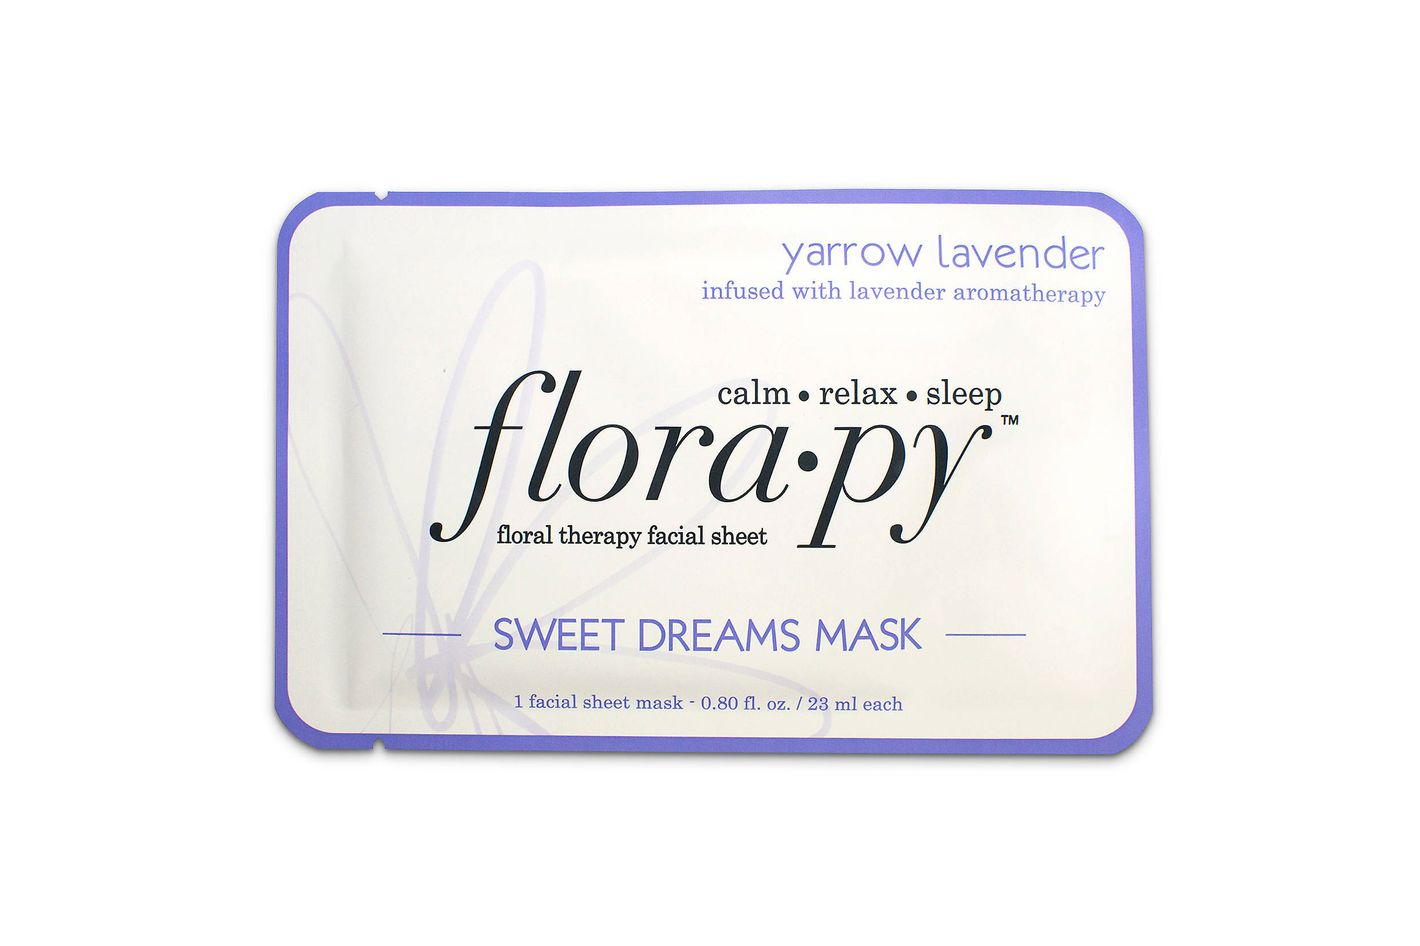 Florapy Facial Sheet Mask, Sweet Dreams Yarrow-Lavender